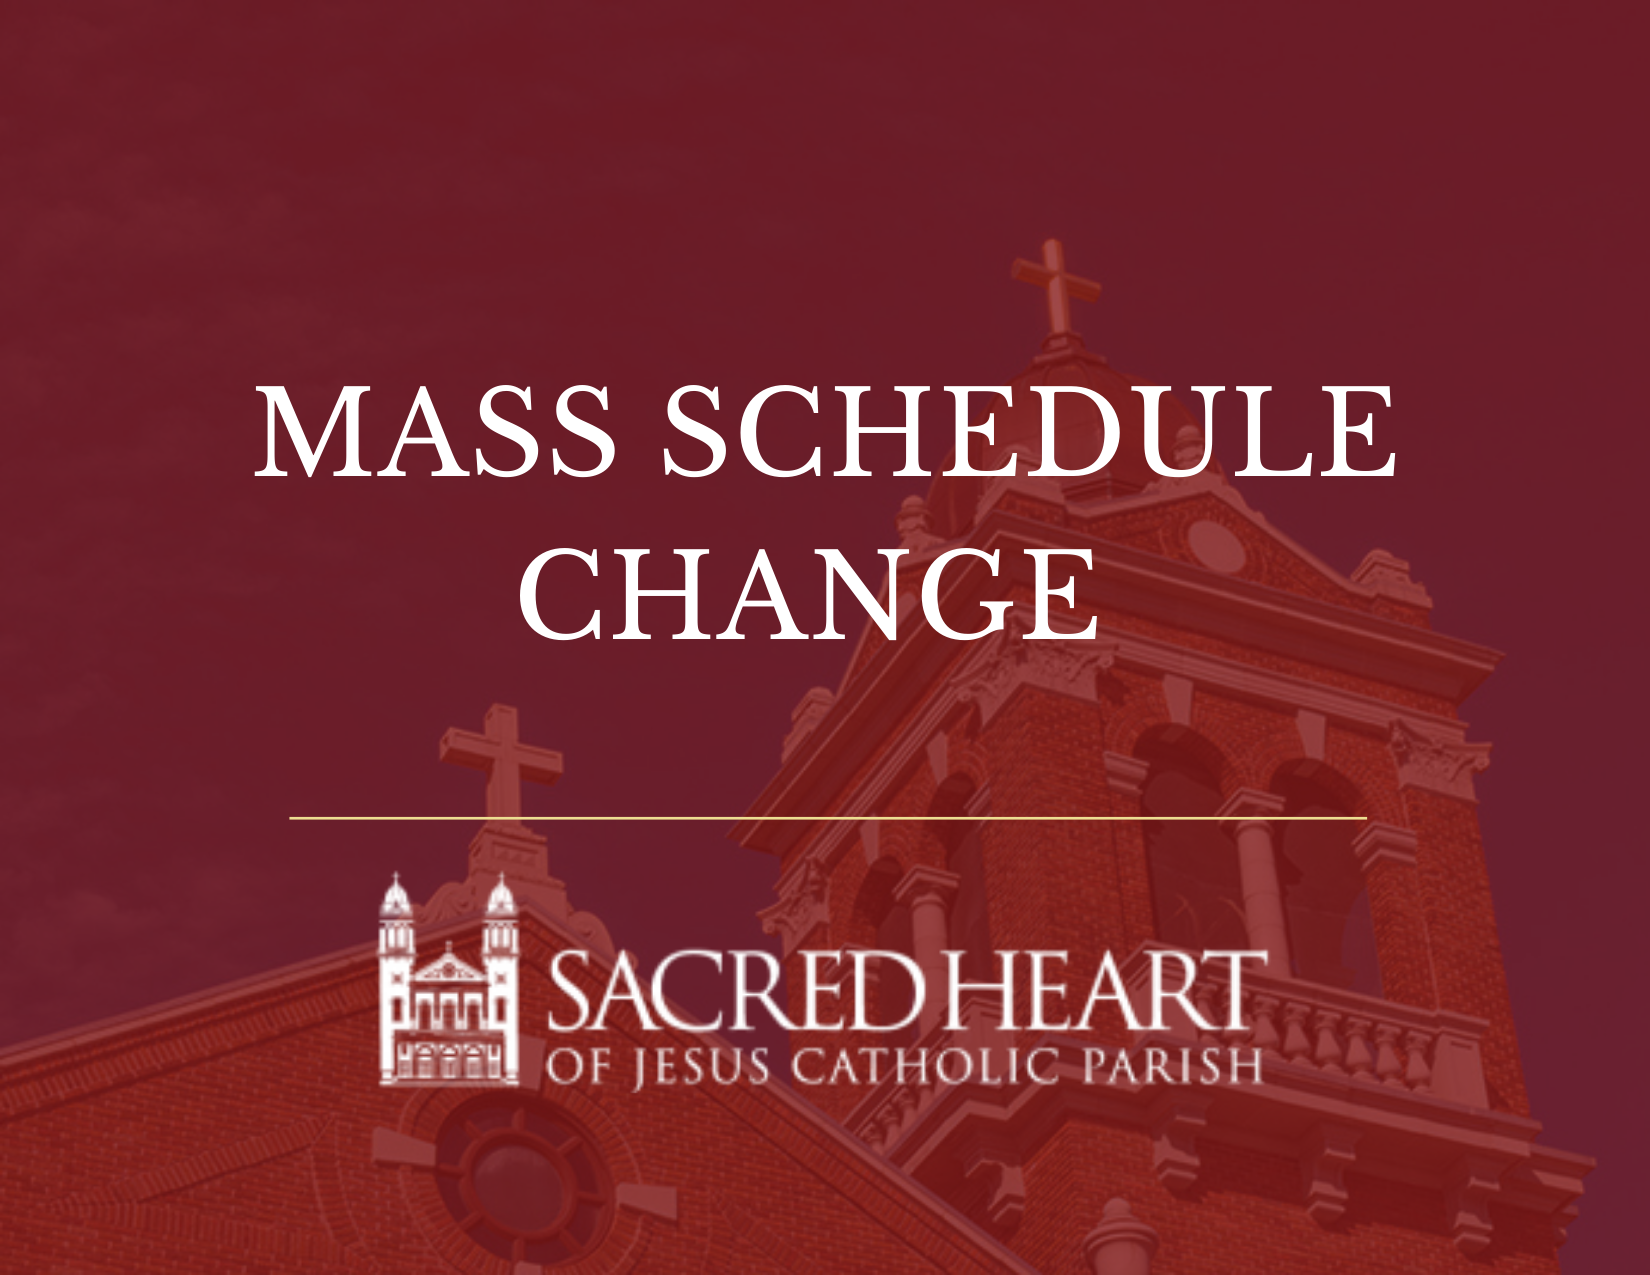 NEW MASS SCHEDULE TAKES EFFECT JUNE 13!